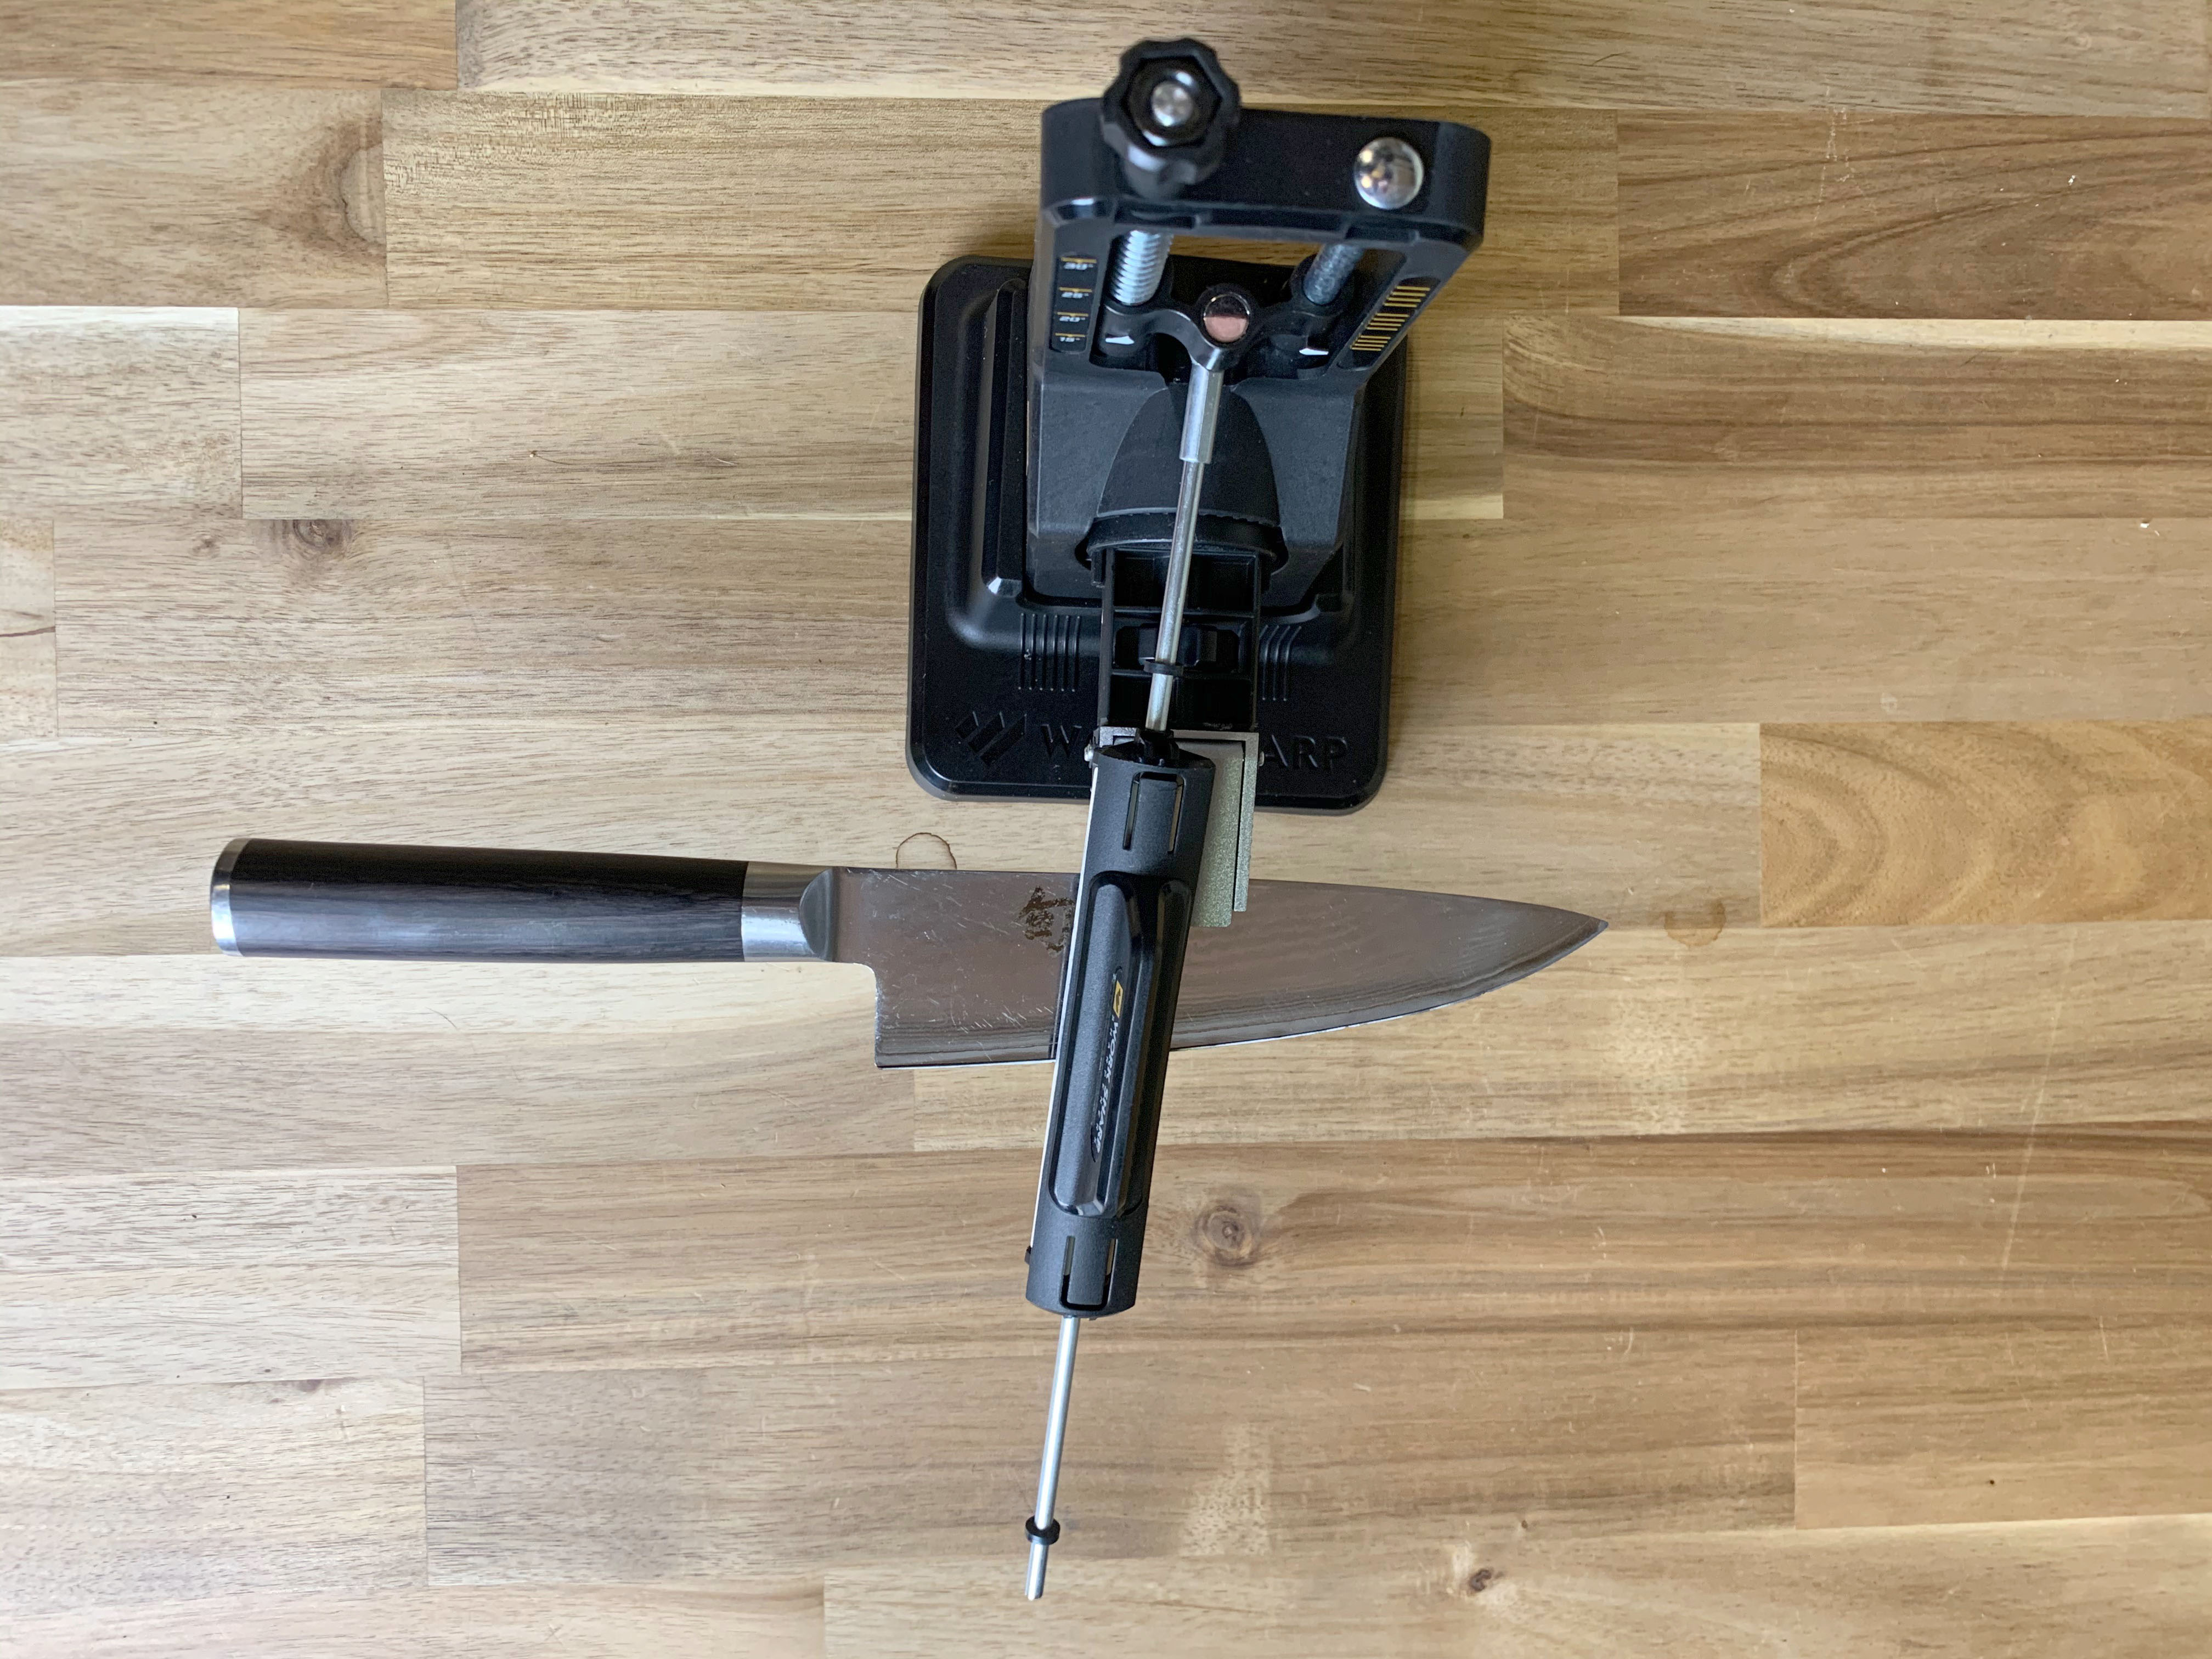 Work Sharp Precision Adjust Knife Sharpener Review